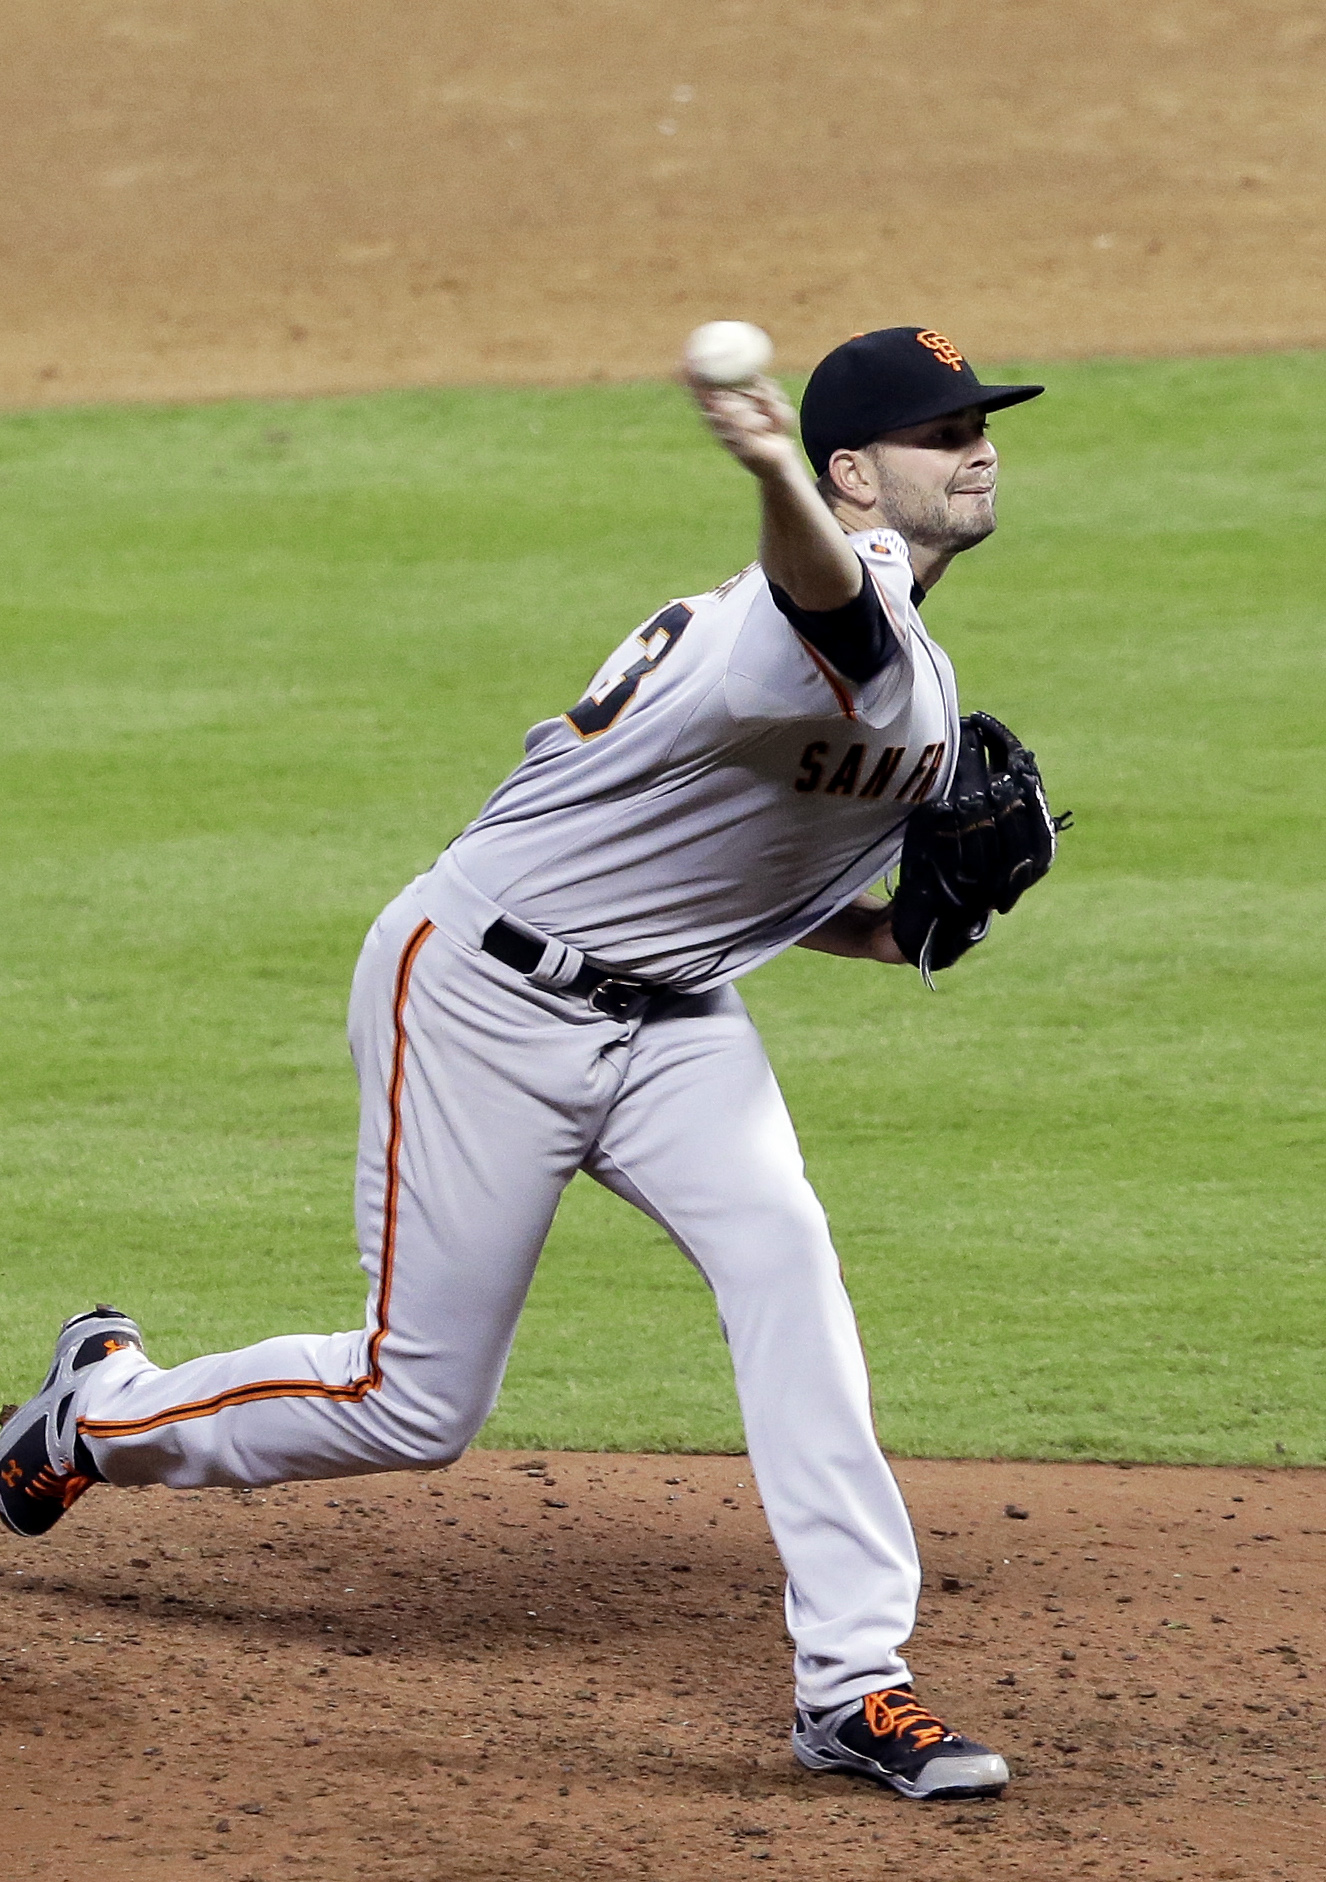 San Francisco Giants' Chris Heston delivers a pitch against the Houston Astros in the sixth inning of a baseball game Tuesday, May 12, 2015, in Houston. (AP Photo/Pat Sullivan)